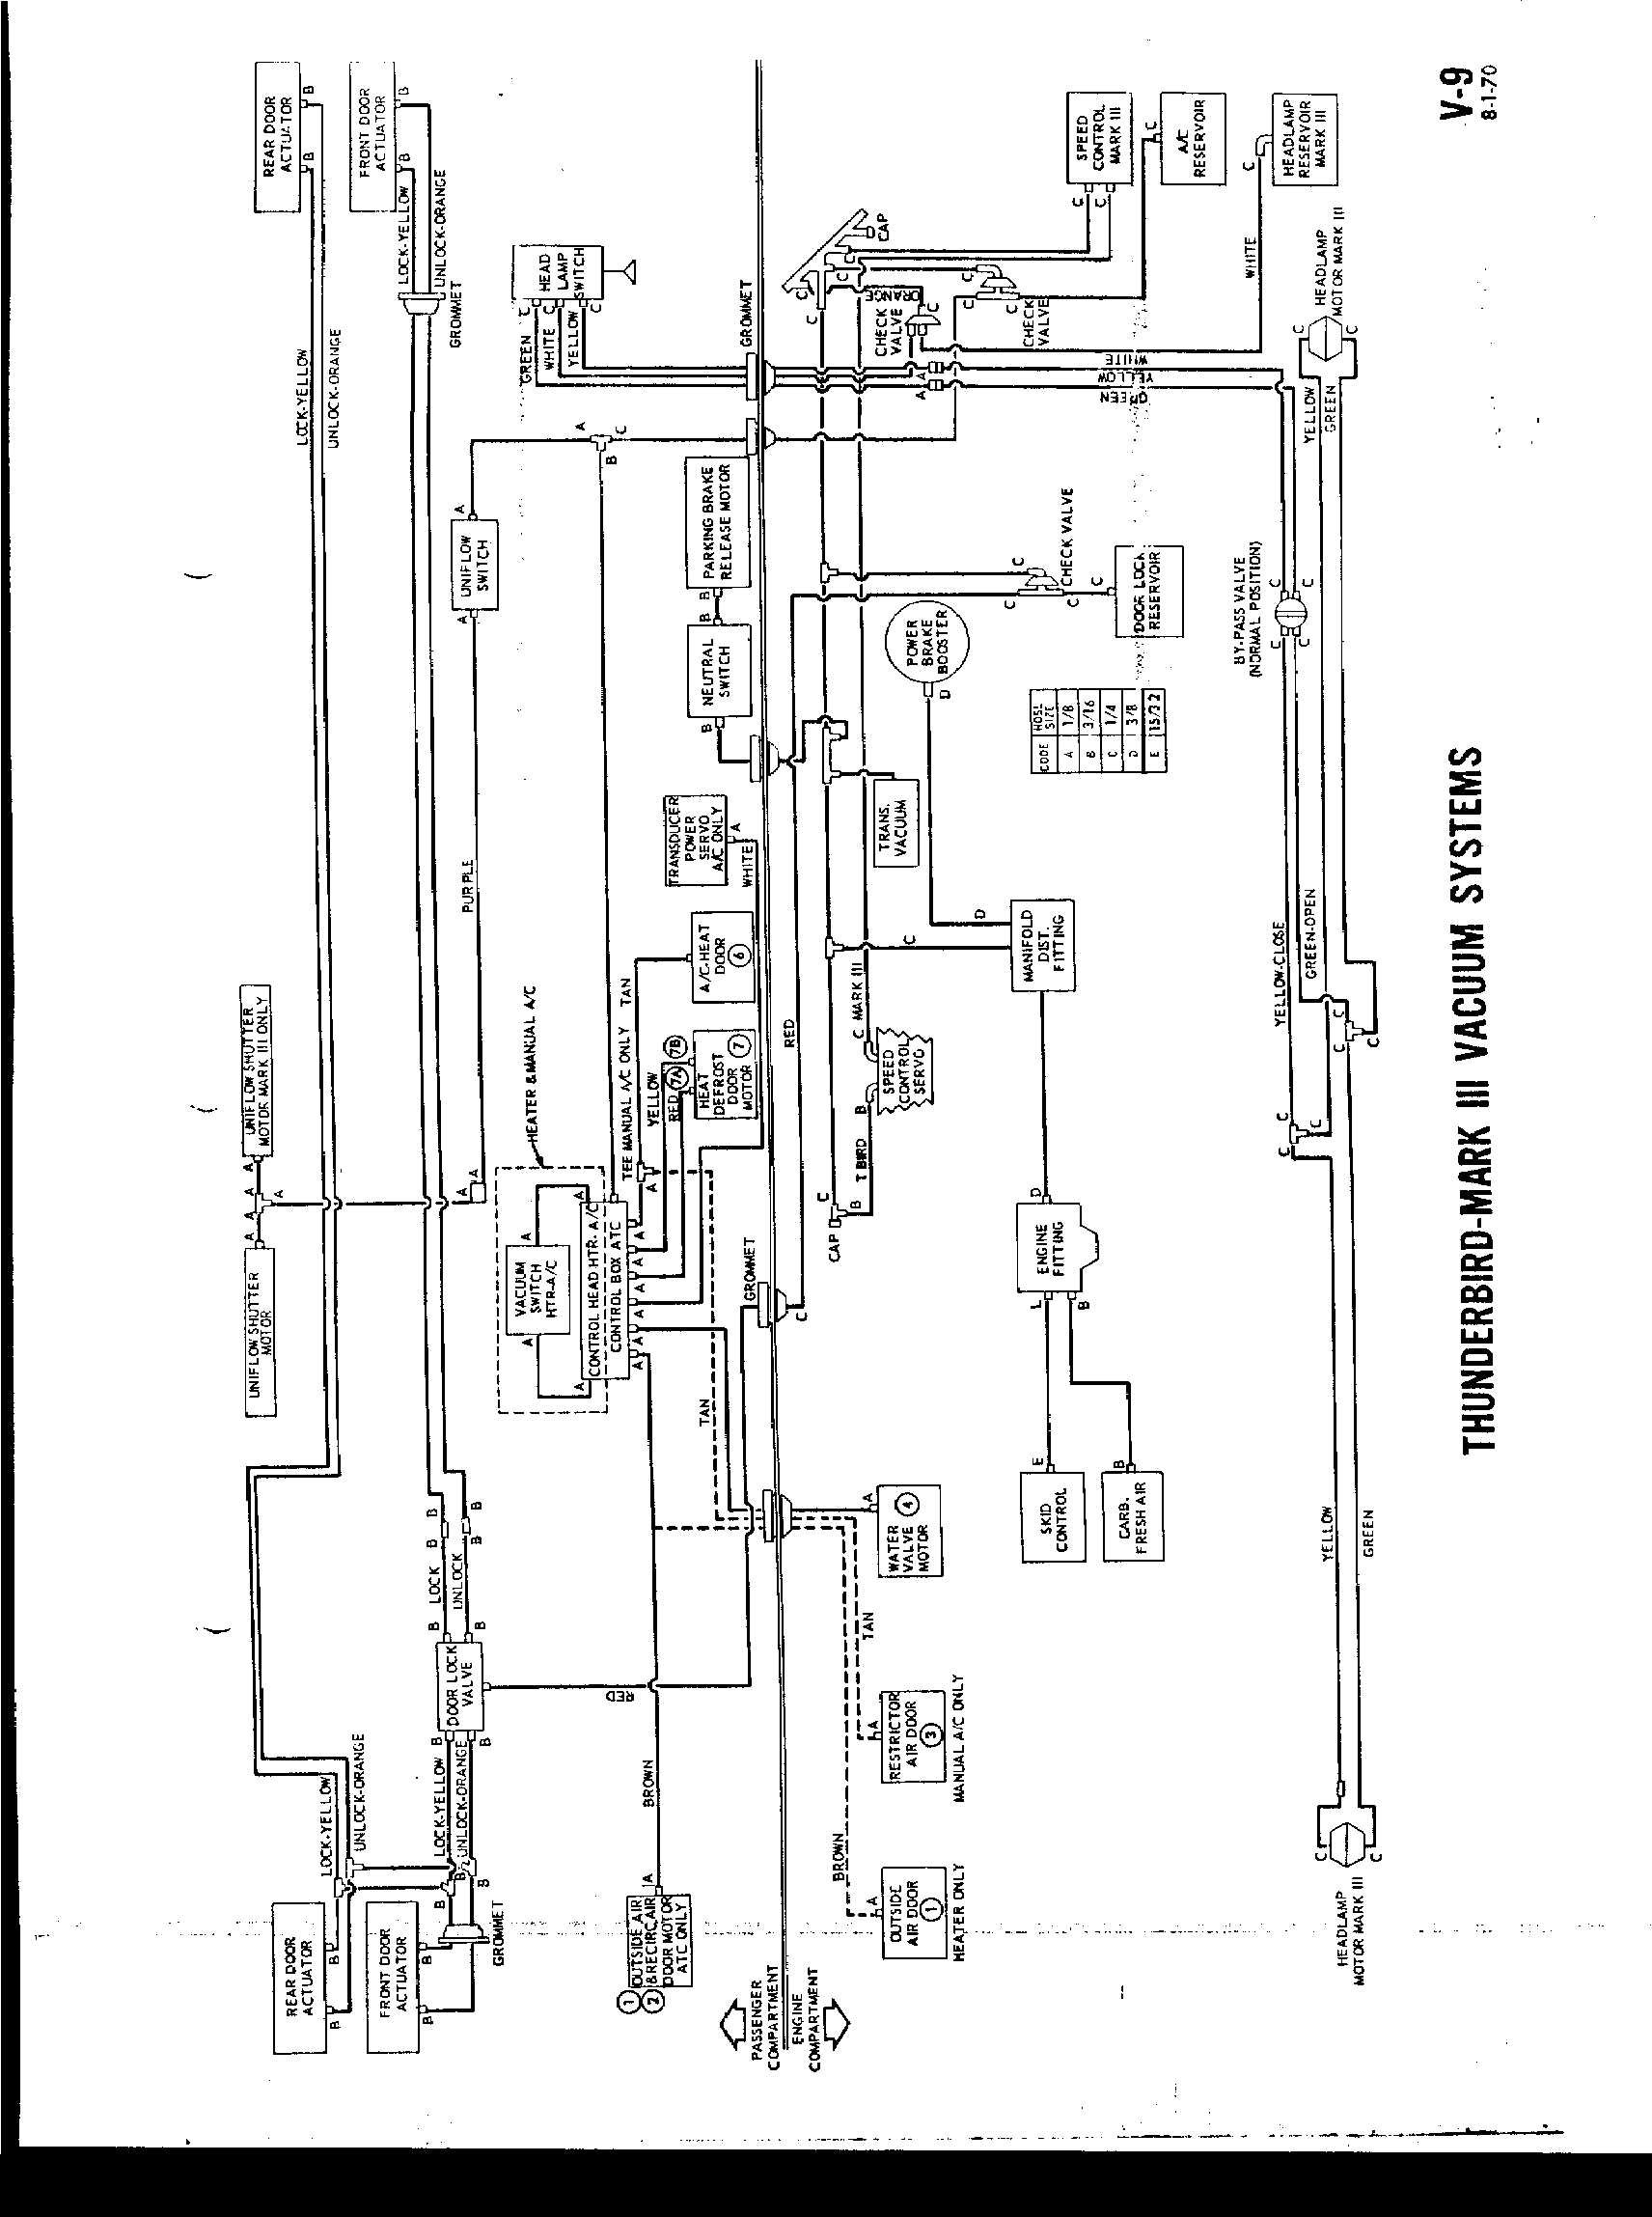 1961 Ford Galaxie Fuse Box. Ford. Auto Fuse Box Diagram